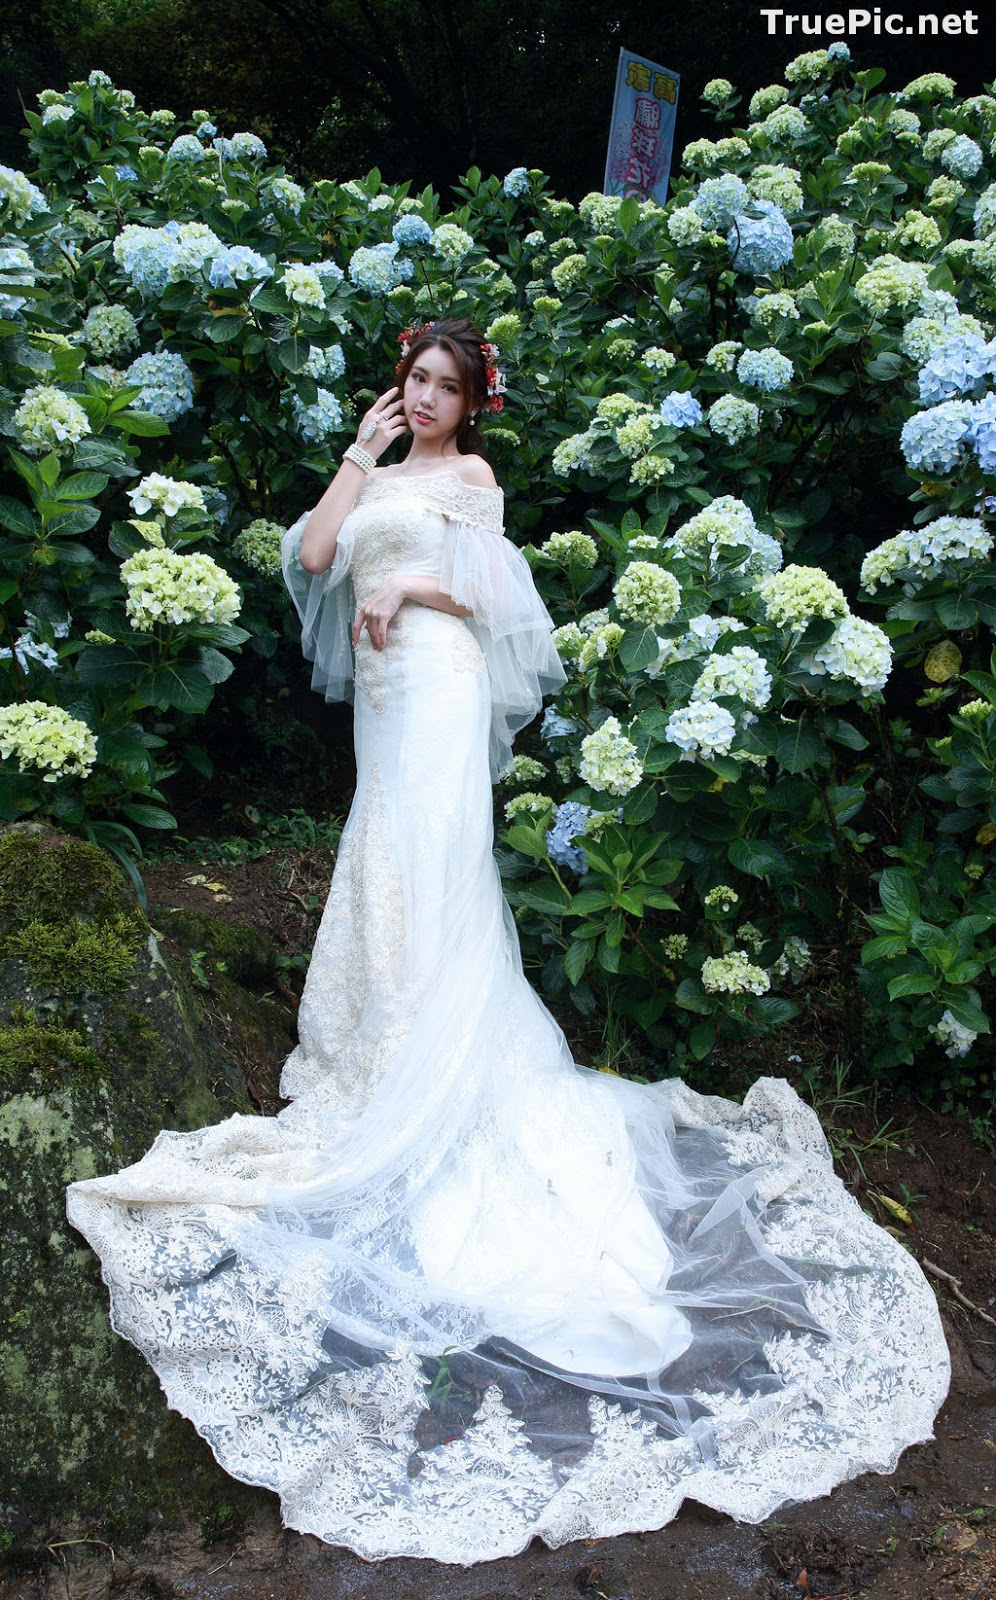 Image Taiwanese Model - 張倫甄 - Beautiful Bride and Hydrangea Flowers - TruePic.net - Picture-1